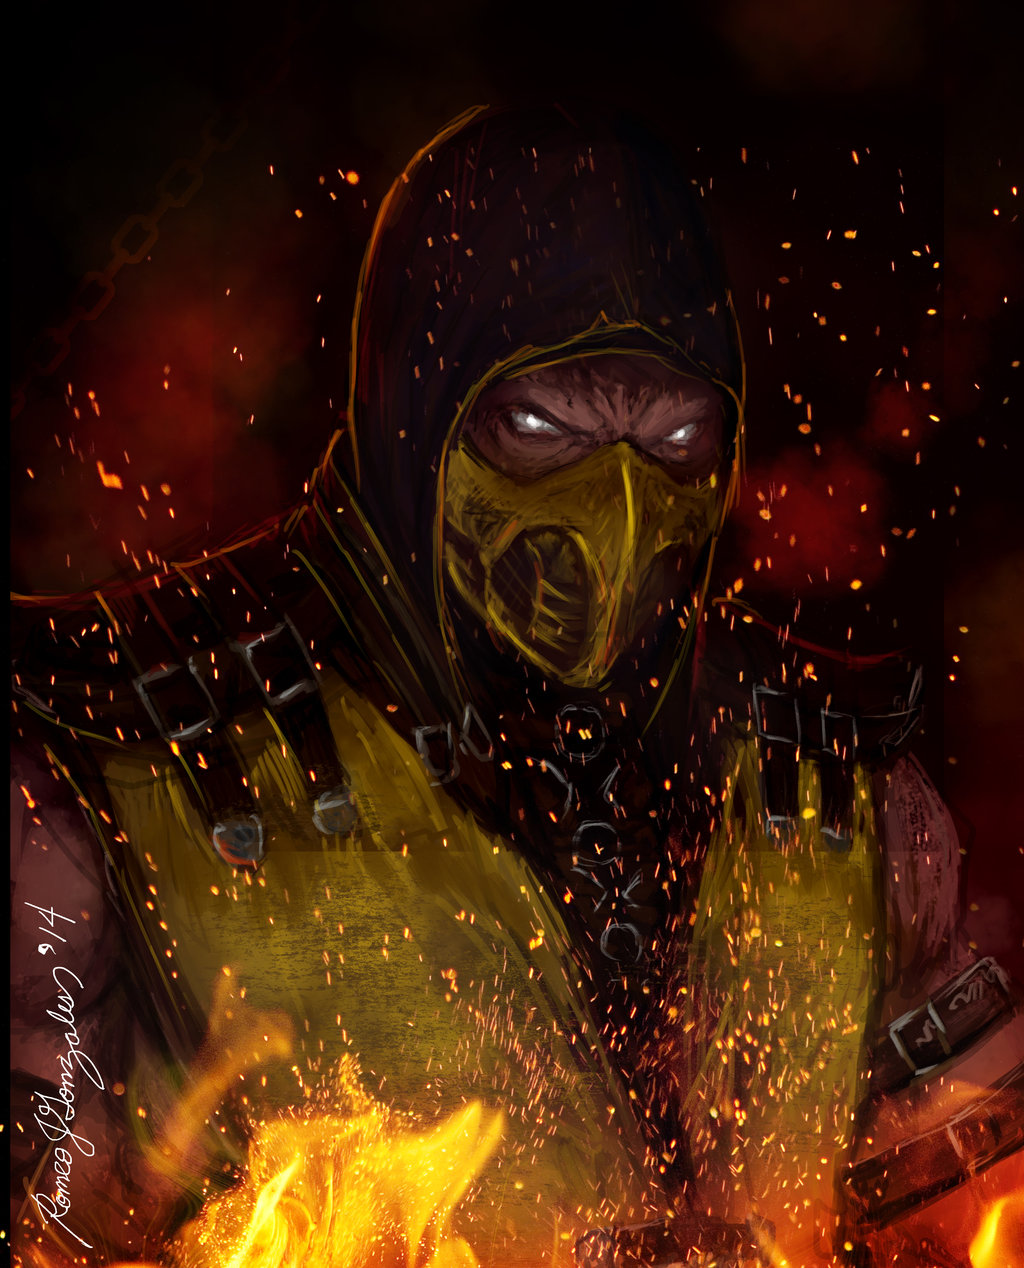 Mortal kombat x wallpaper scorpion hellfire fanart by - Mortal kombat scorpion wallpaper ...